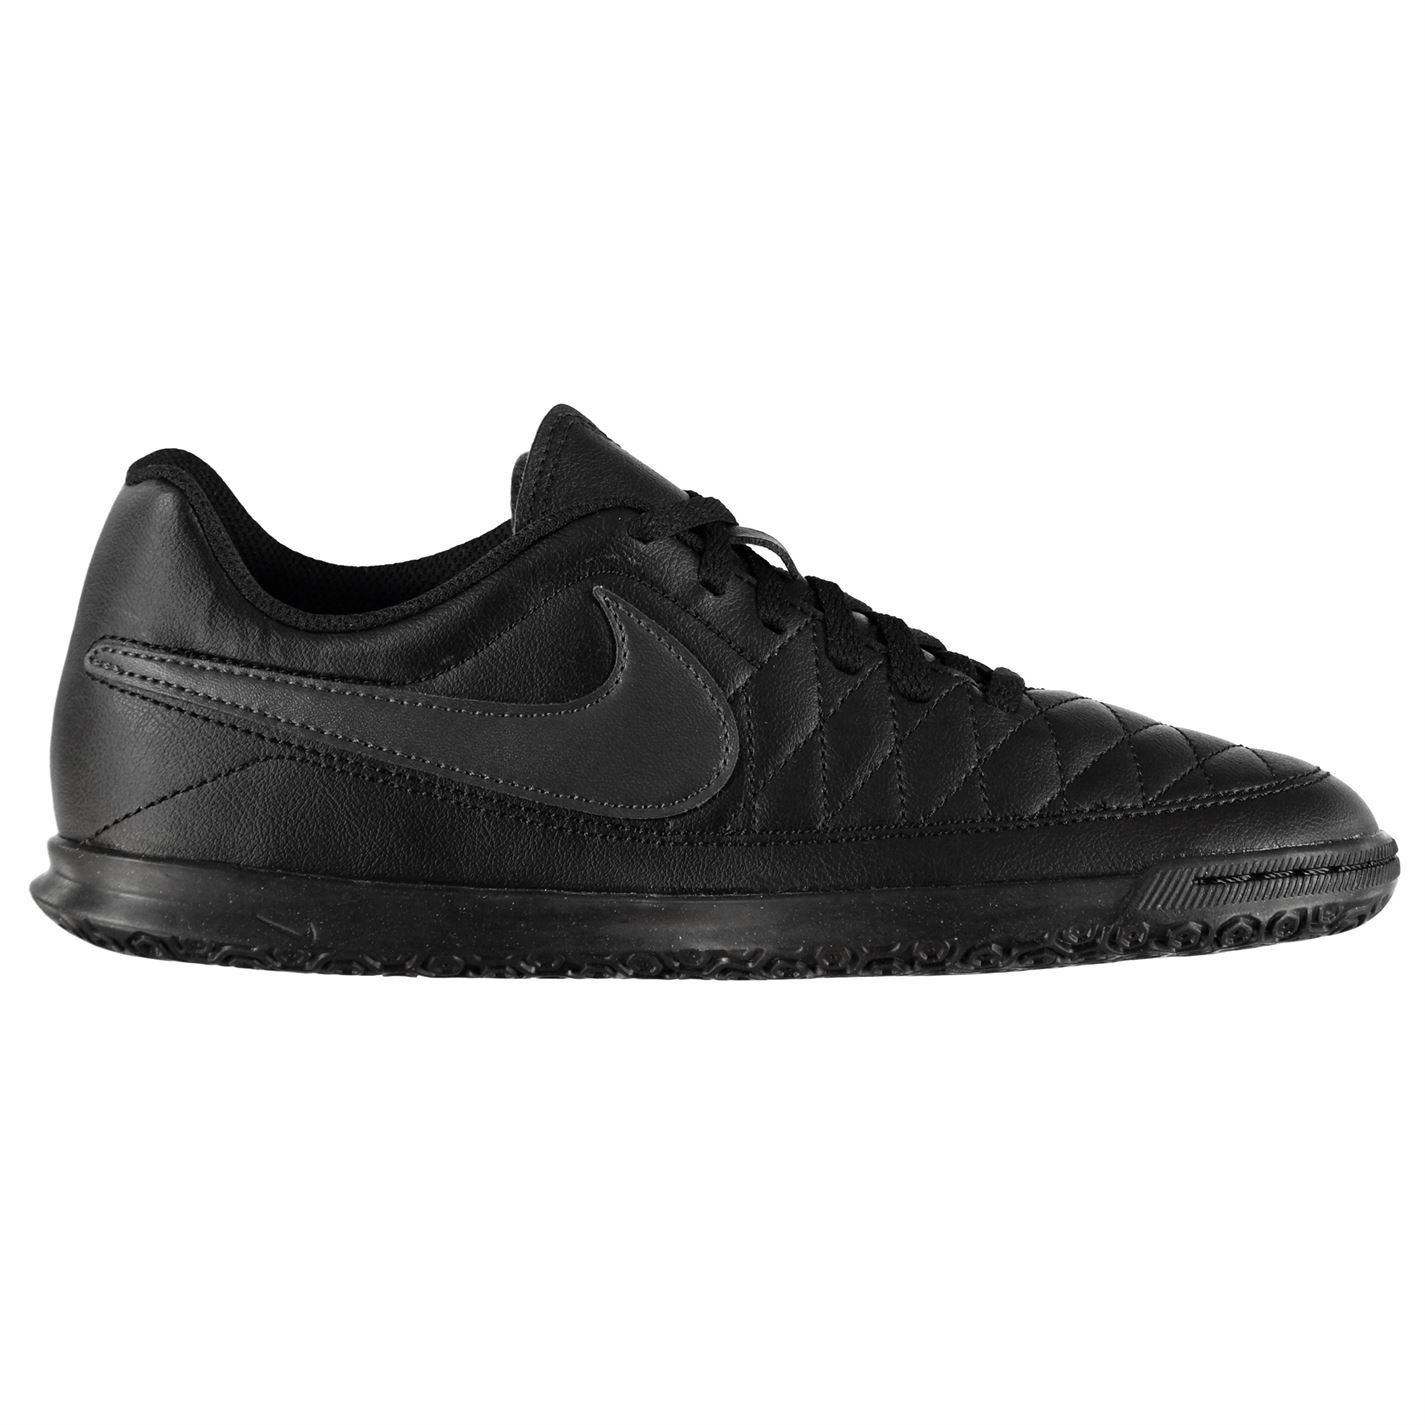 Nike-majestry-Indoor-Football-Baskets-Pour-Homme-Football-Futsal-Chaussures-Baskets-Bottes miniature 4